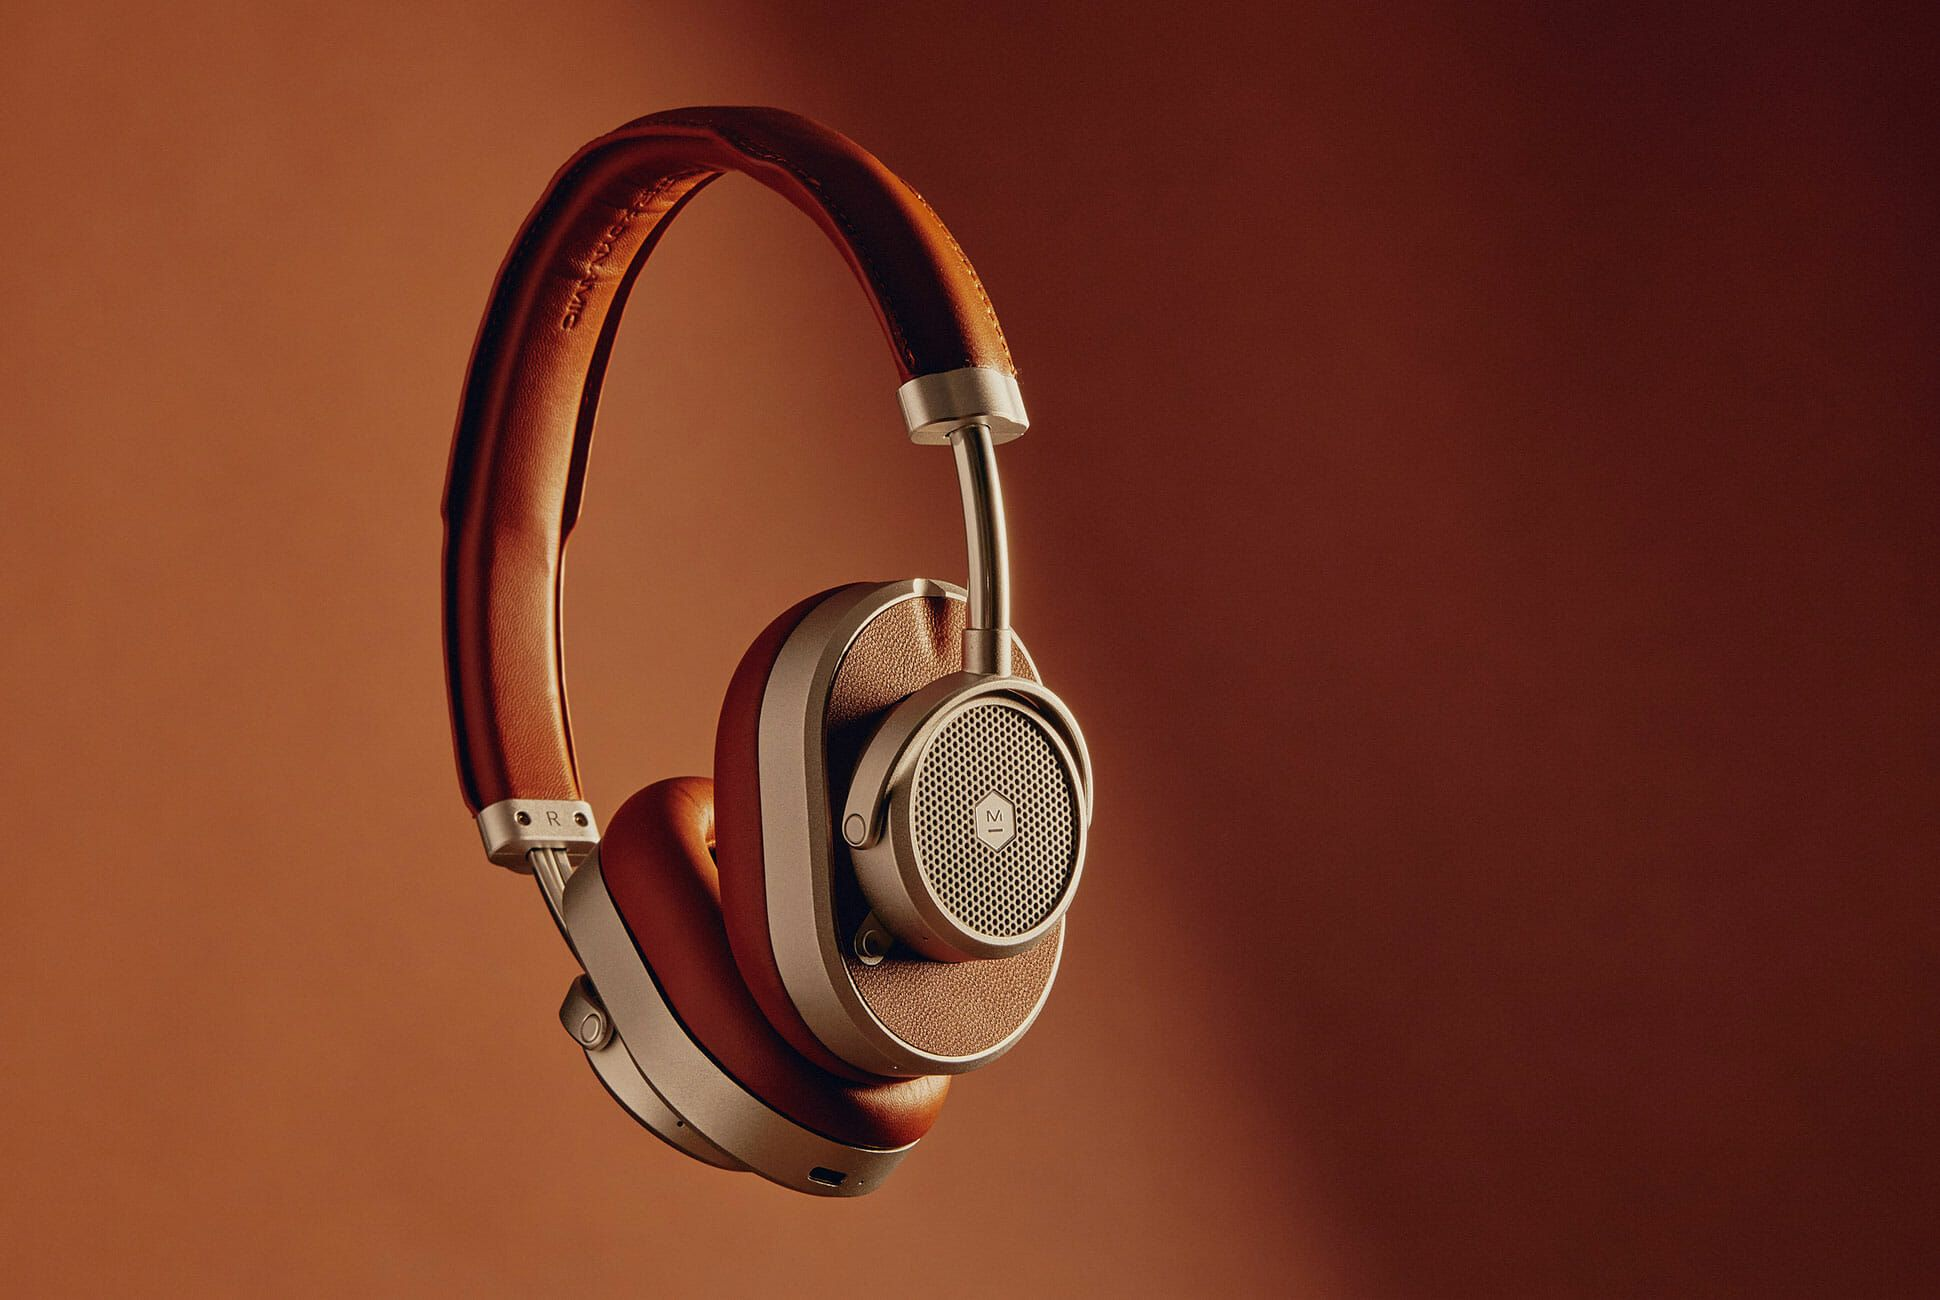 https://hips.hearstapps.com/amv-prod-gp.s3.amazonaws.com/gearpatrol/wp-content/uploads/2019/06/These-Stunning-Noise-Canceling-Headphones-Sound-As-Good-As-They-Look-Gear-Patrol-lead-full.jpg?crop=0.6701030927835051xw:1xh;center,top&resize=640:*